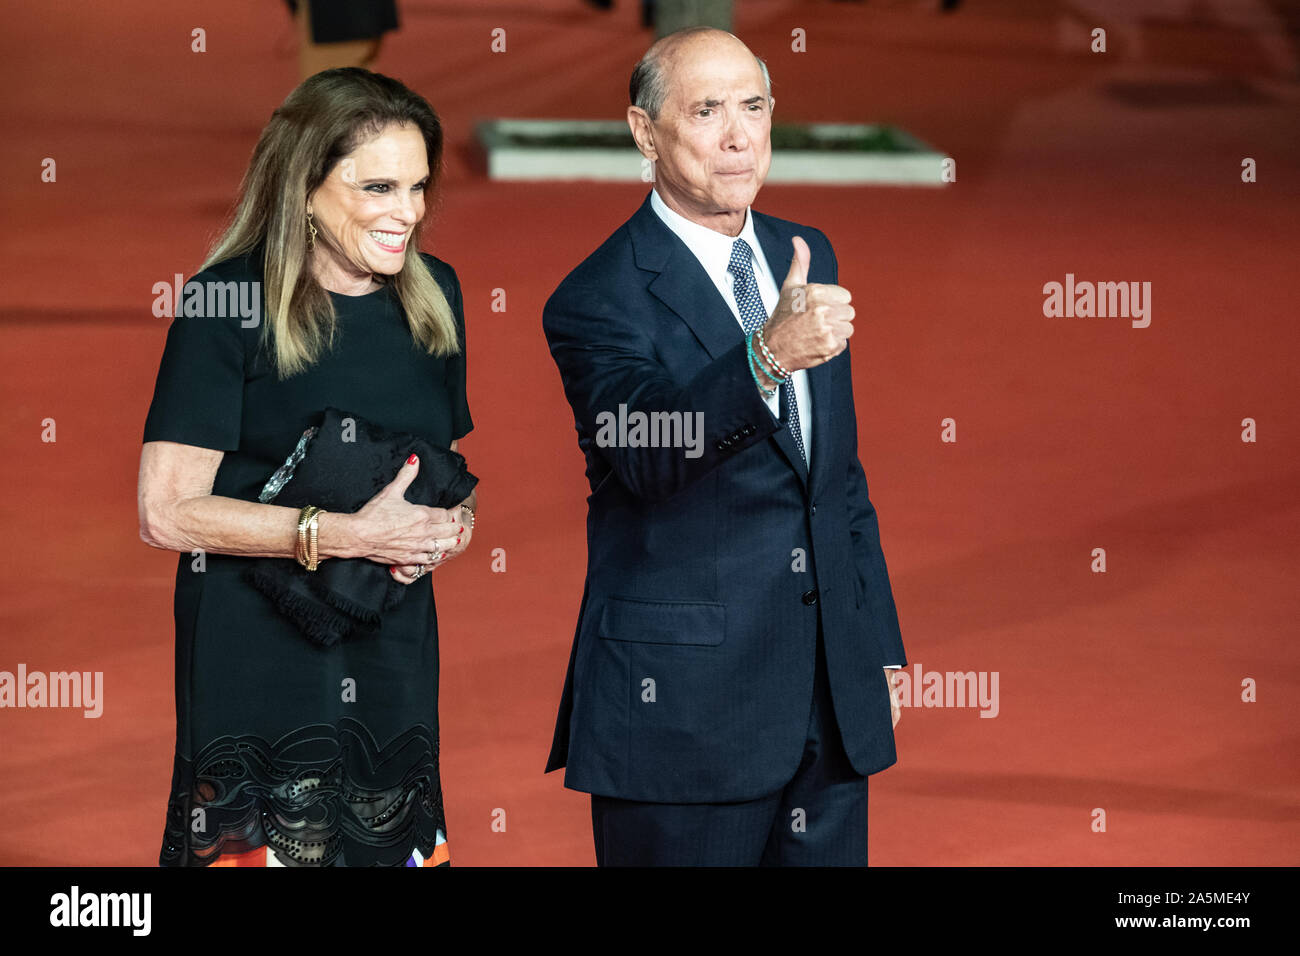 """US ambassador to Italy, Lewis M. Eisenberg gestures as he arrives for the screening of the film """"The Irishman"""" during the 14th Rome Film Festival. Stock Photo"""